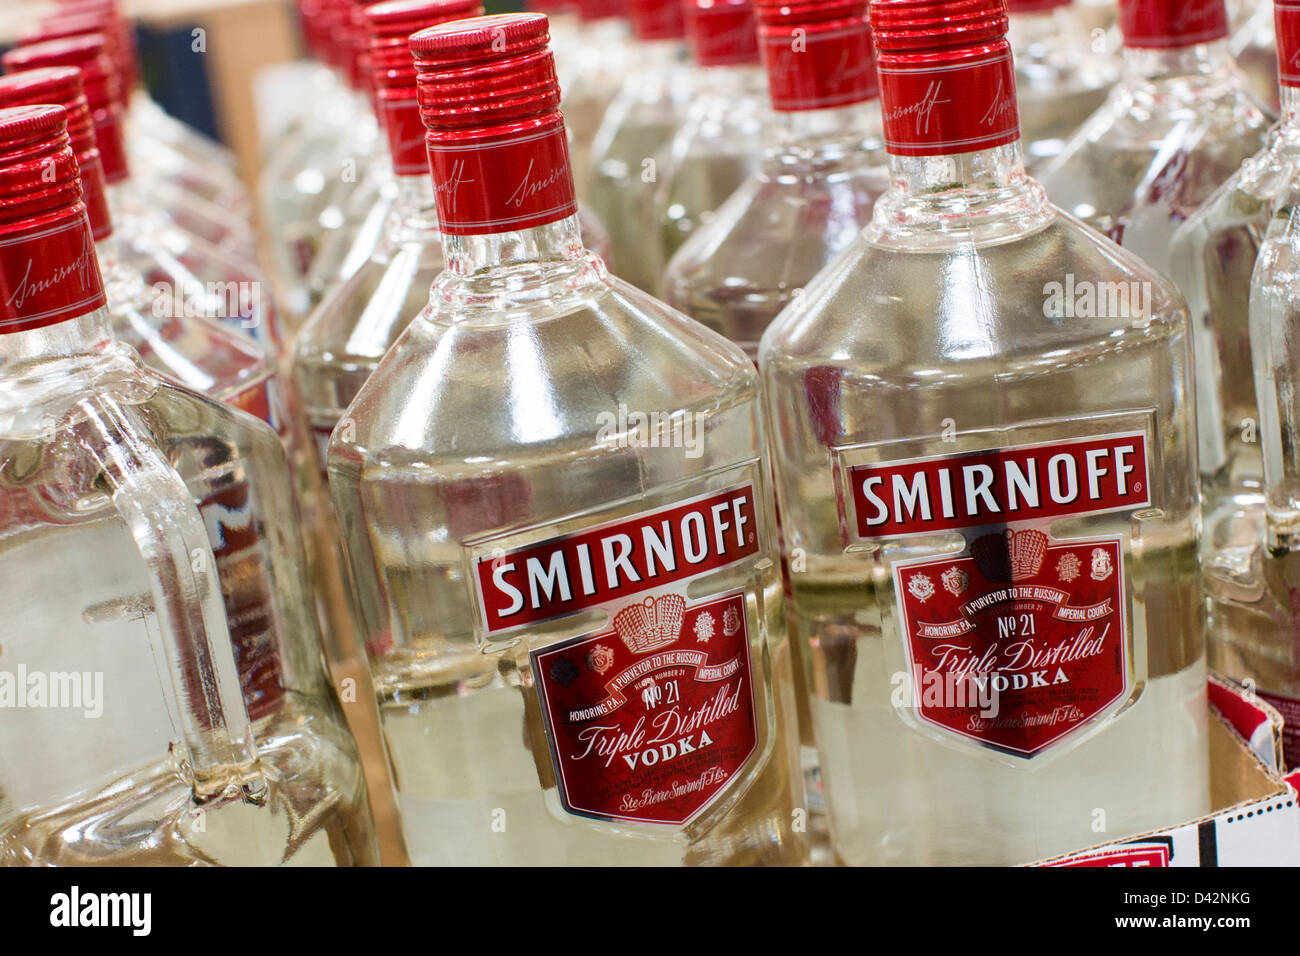 Smirnoff vodka on display at a costco wholesale warehouse club stock smirnoff vodka on display at a costco wholesale warehouse club stock photo 54150644 alamy thecheapjerseys Images